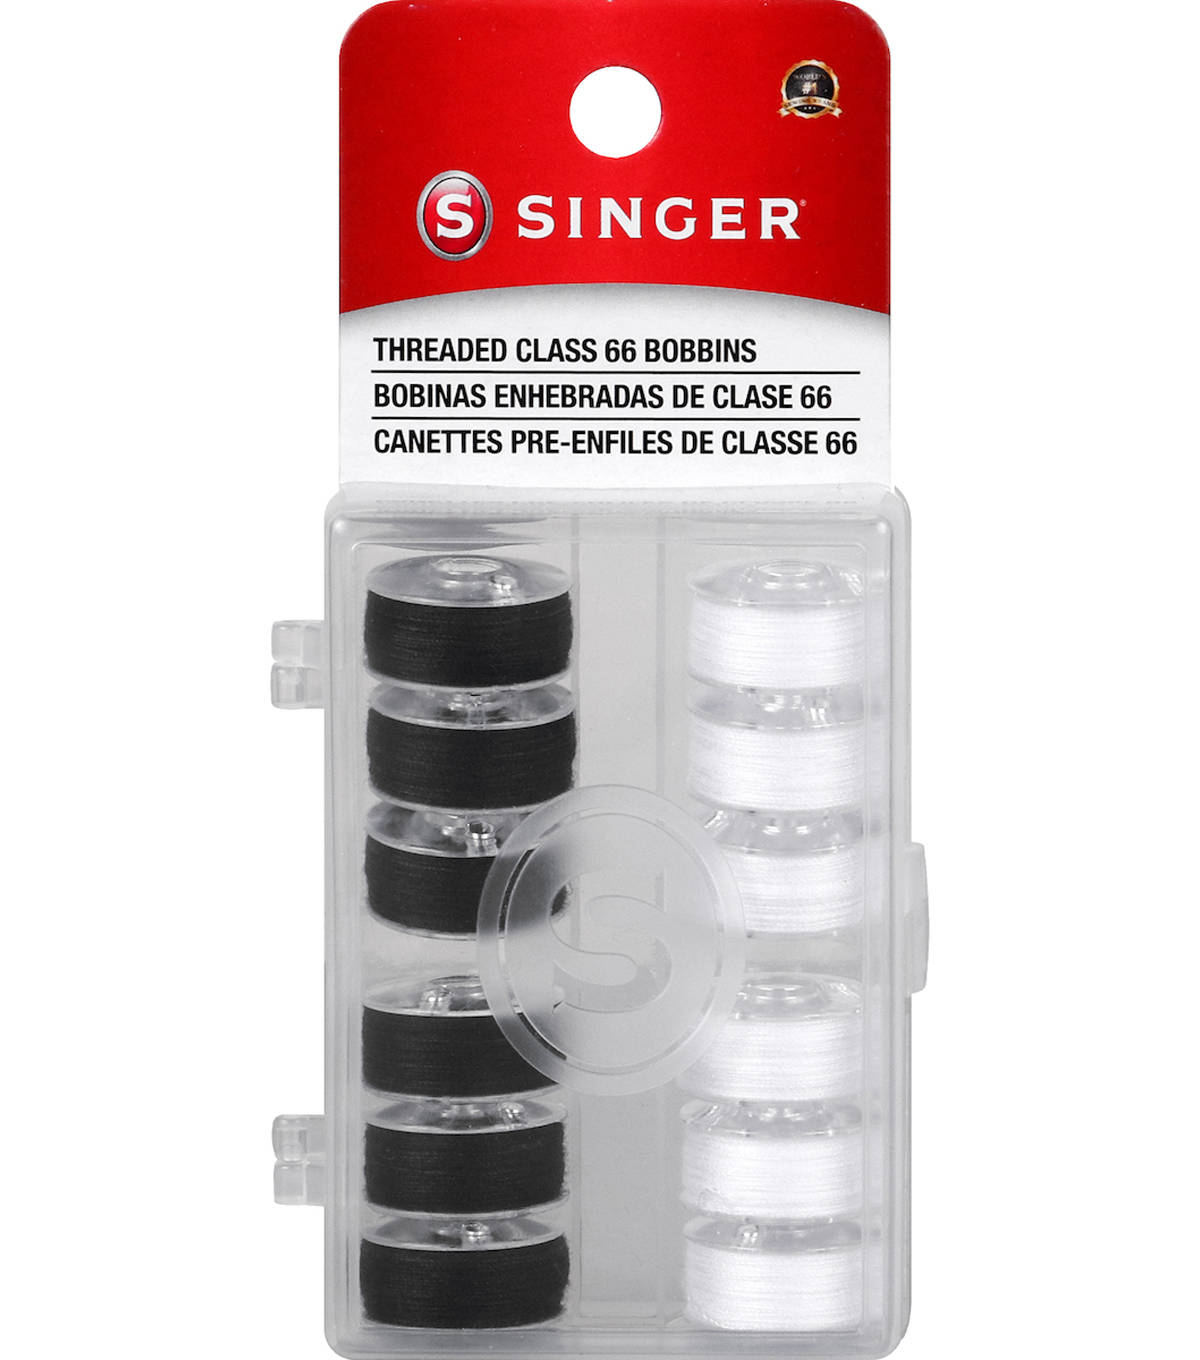 12 Threaded Class 66 Bobbins (Black & White)